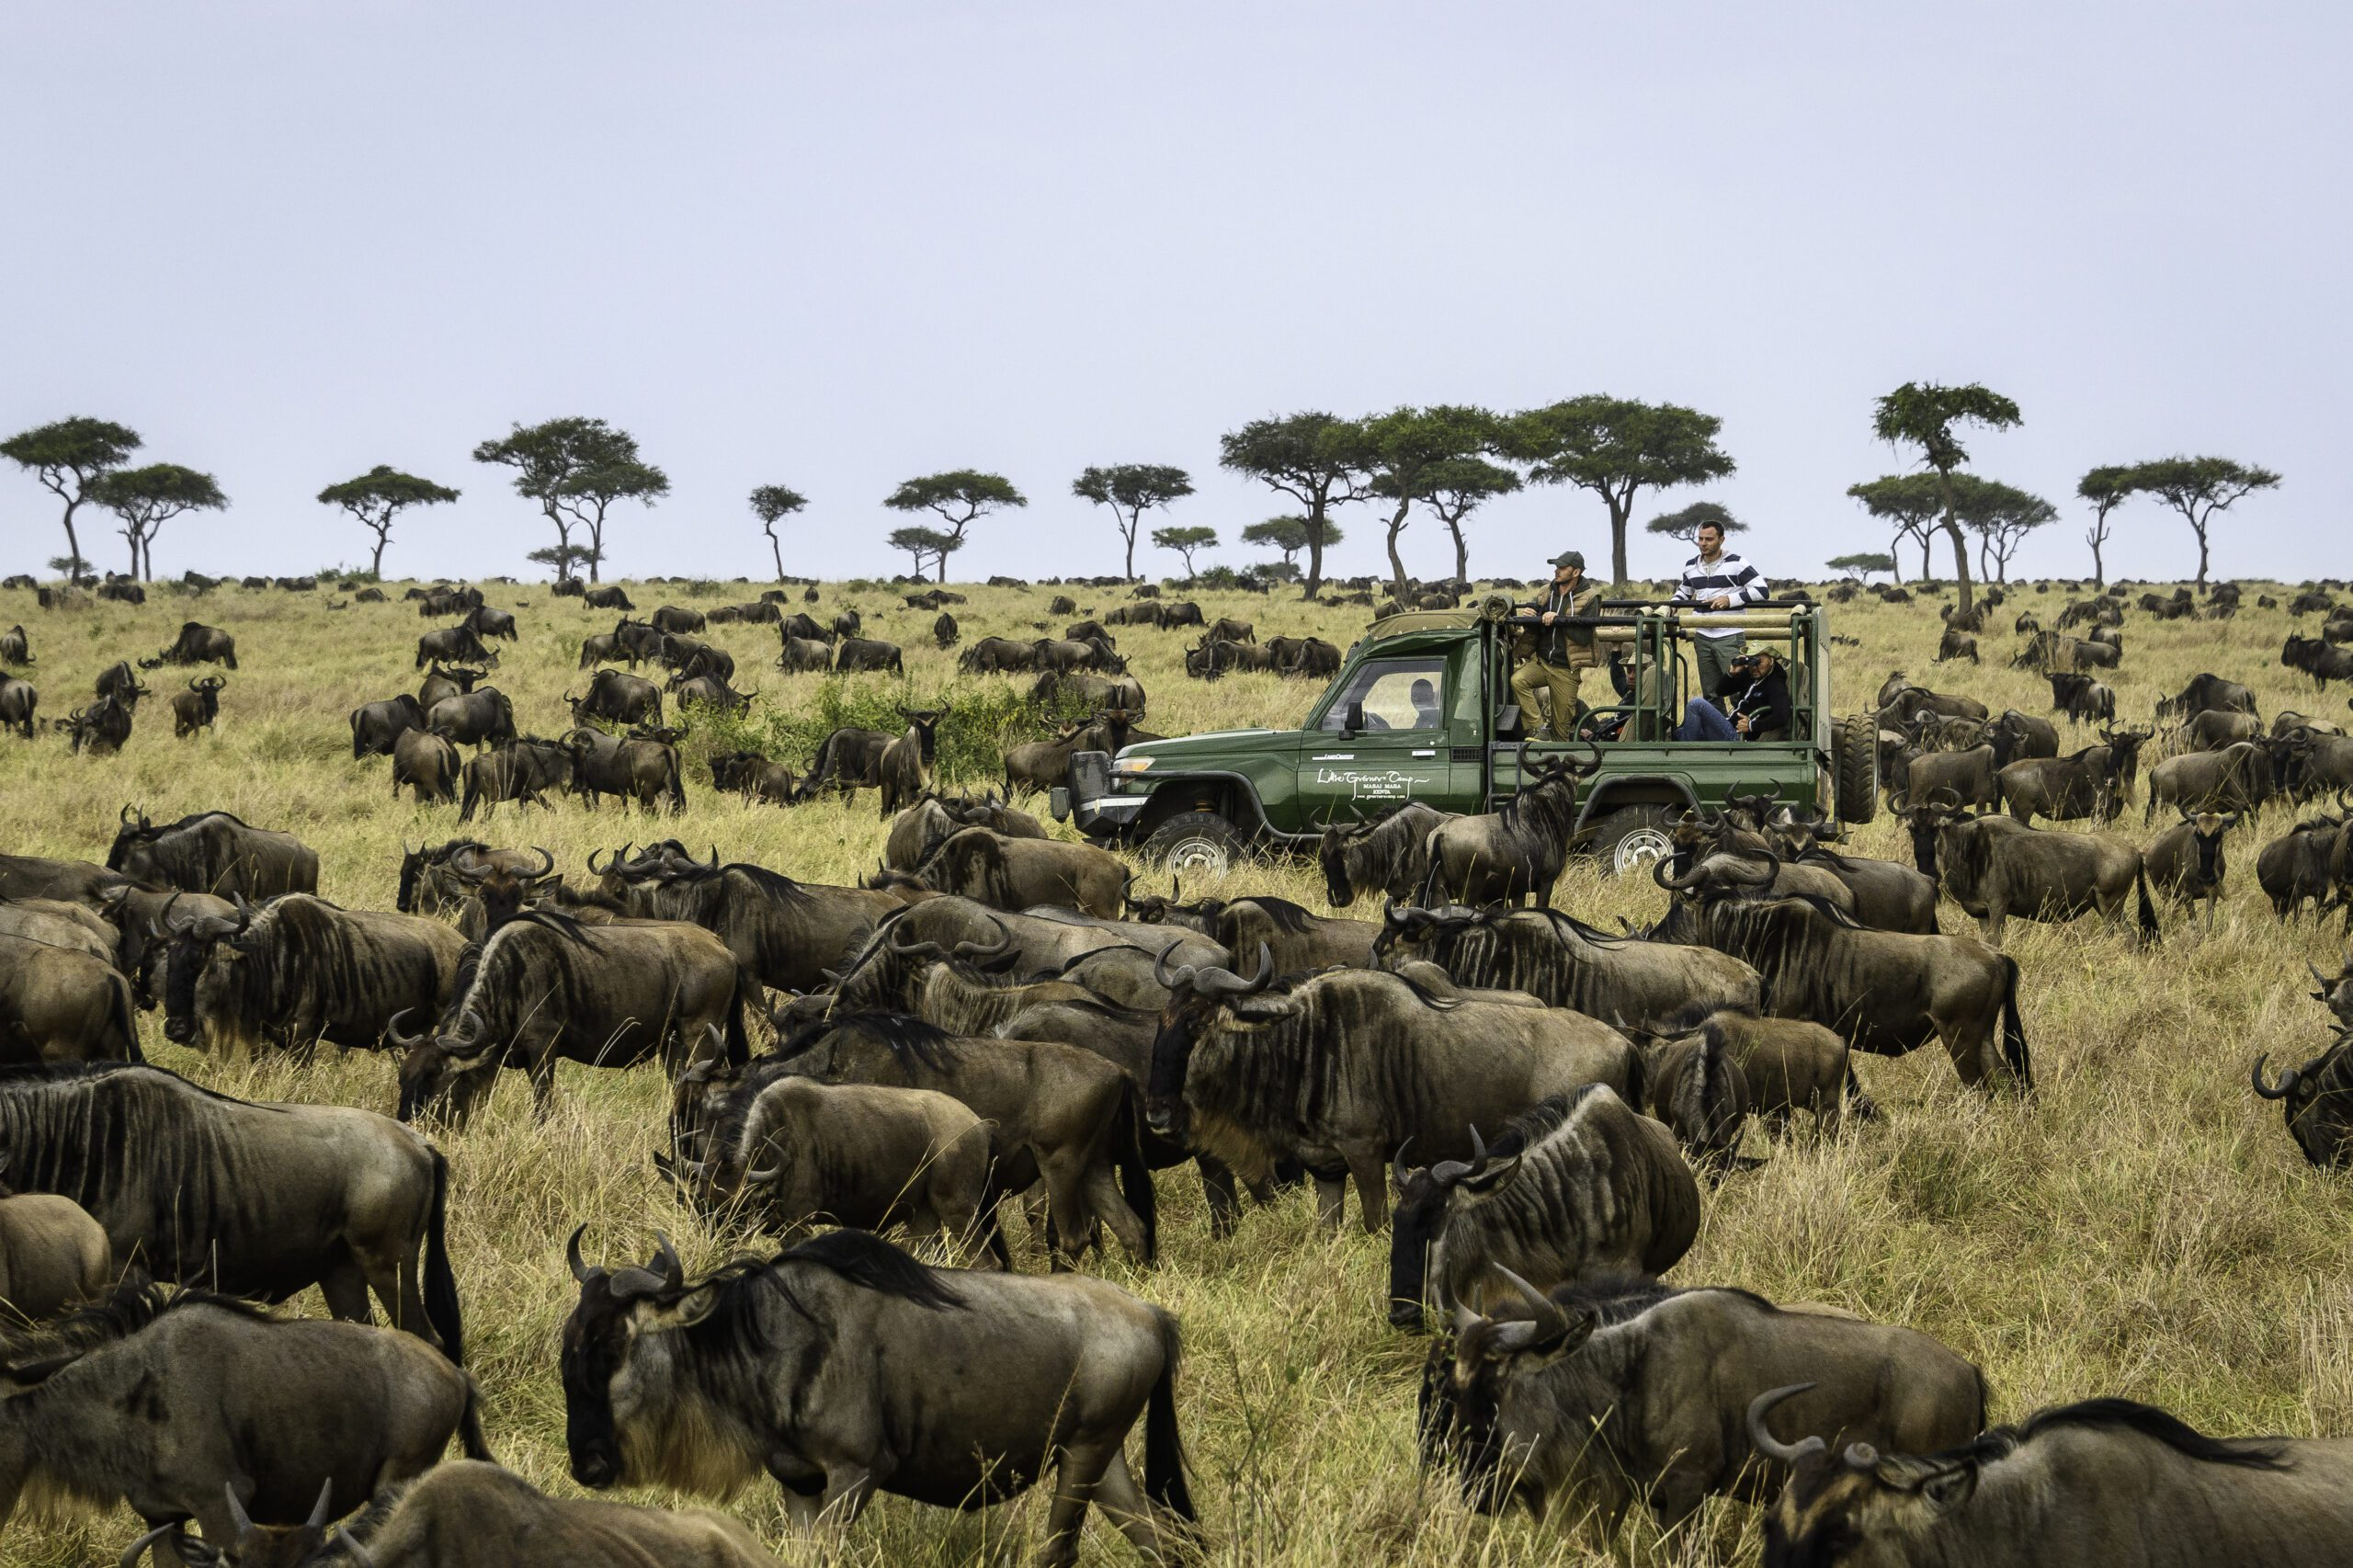 wildebeest on the open plains surrounding a safari vehicle in Kenya on this Southern Africa safari